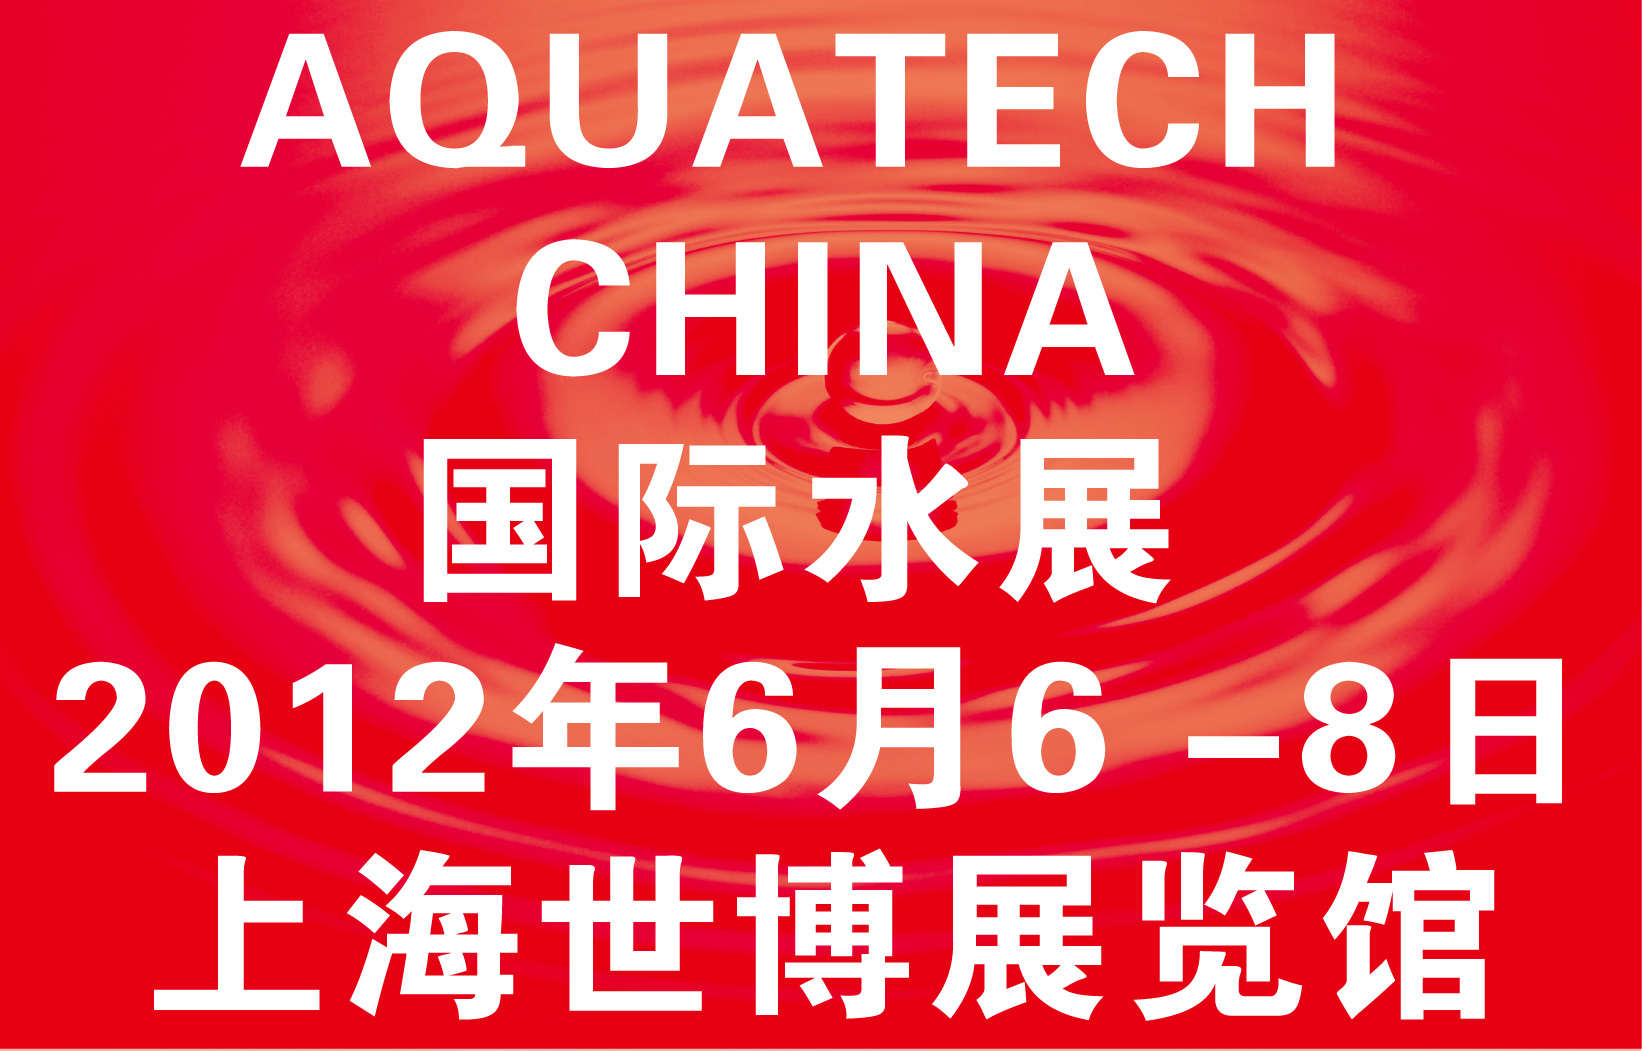 第五届AQUATECH CHINA国际水展